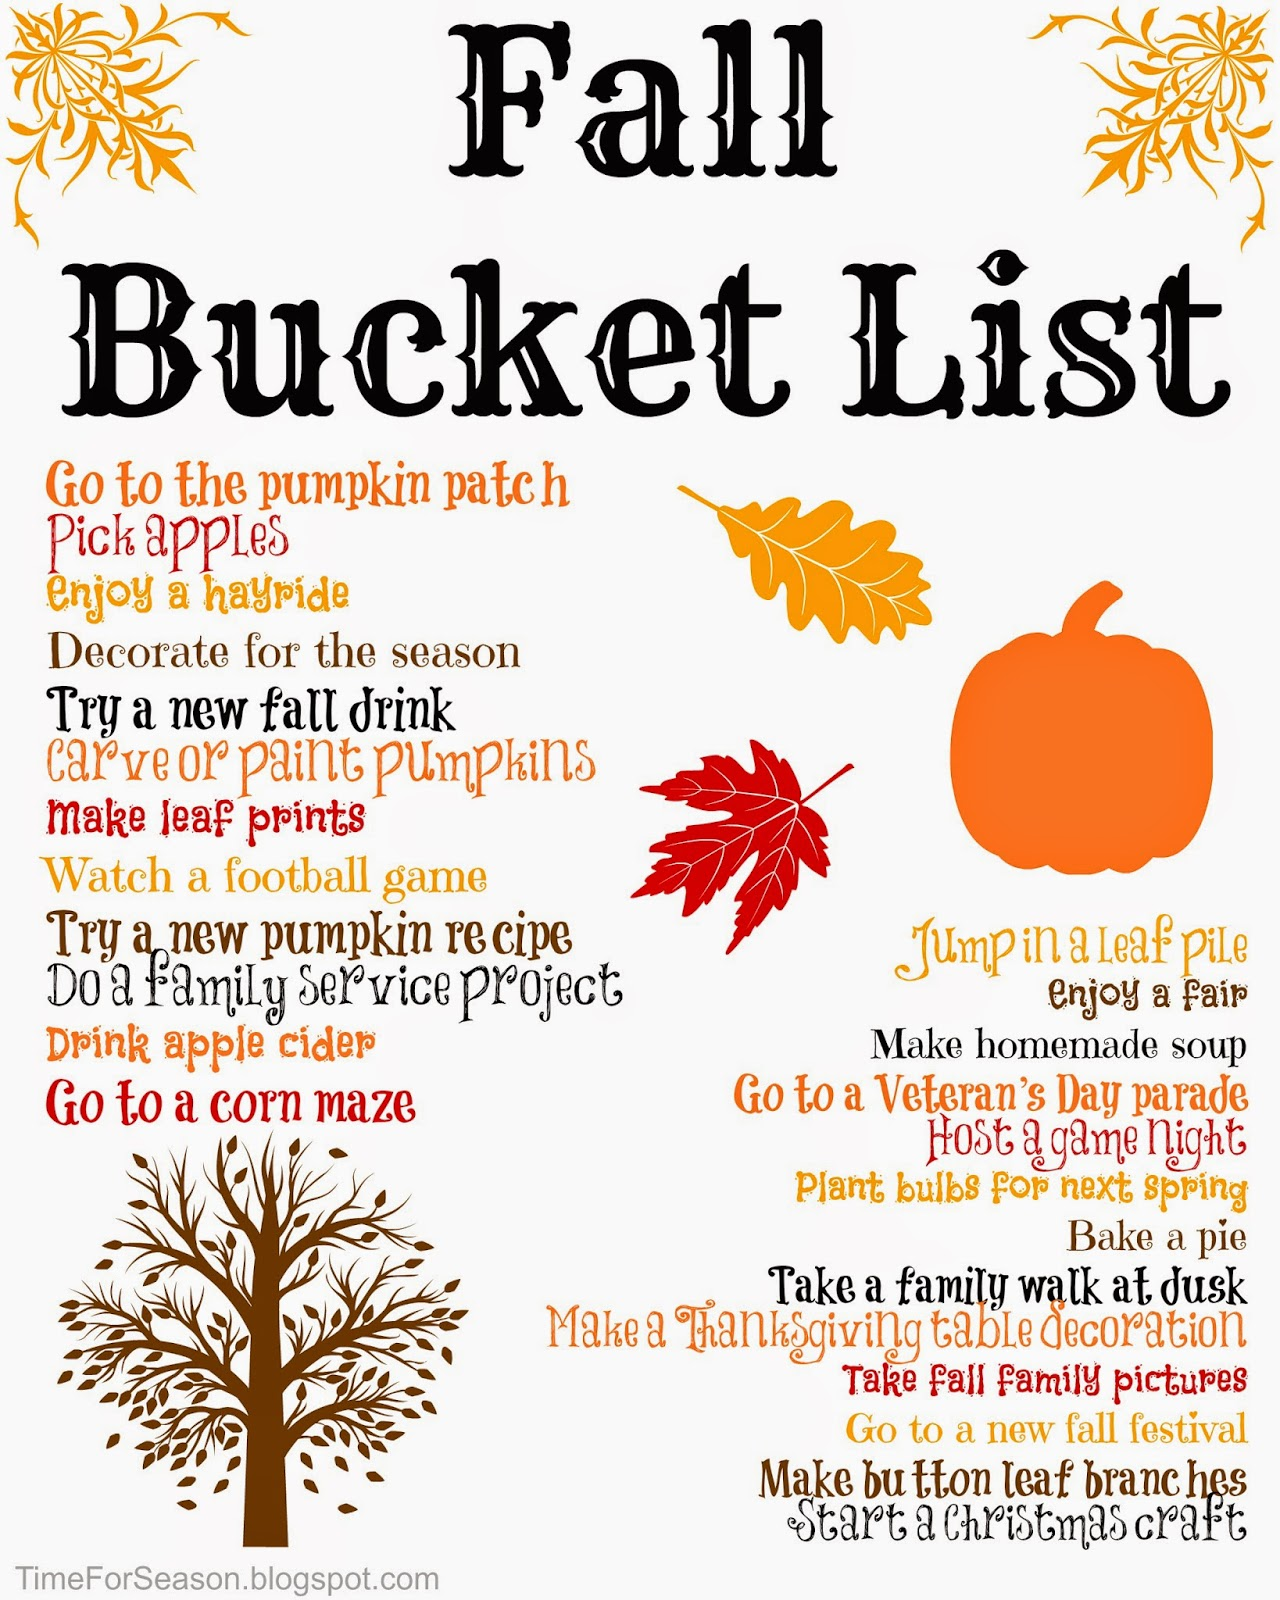 http://timeforseason.blogspot.com/2014/08/fall-bucket-list-printable-2014.html